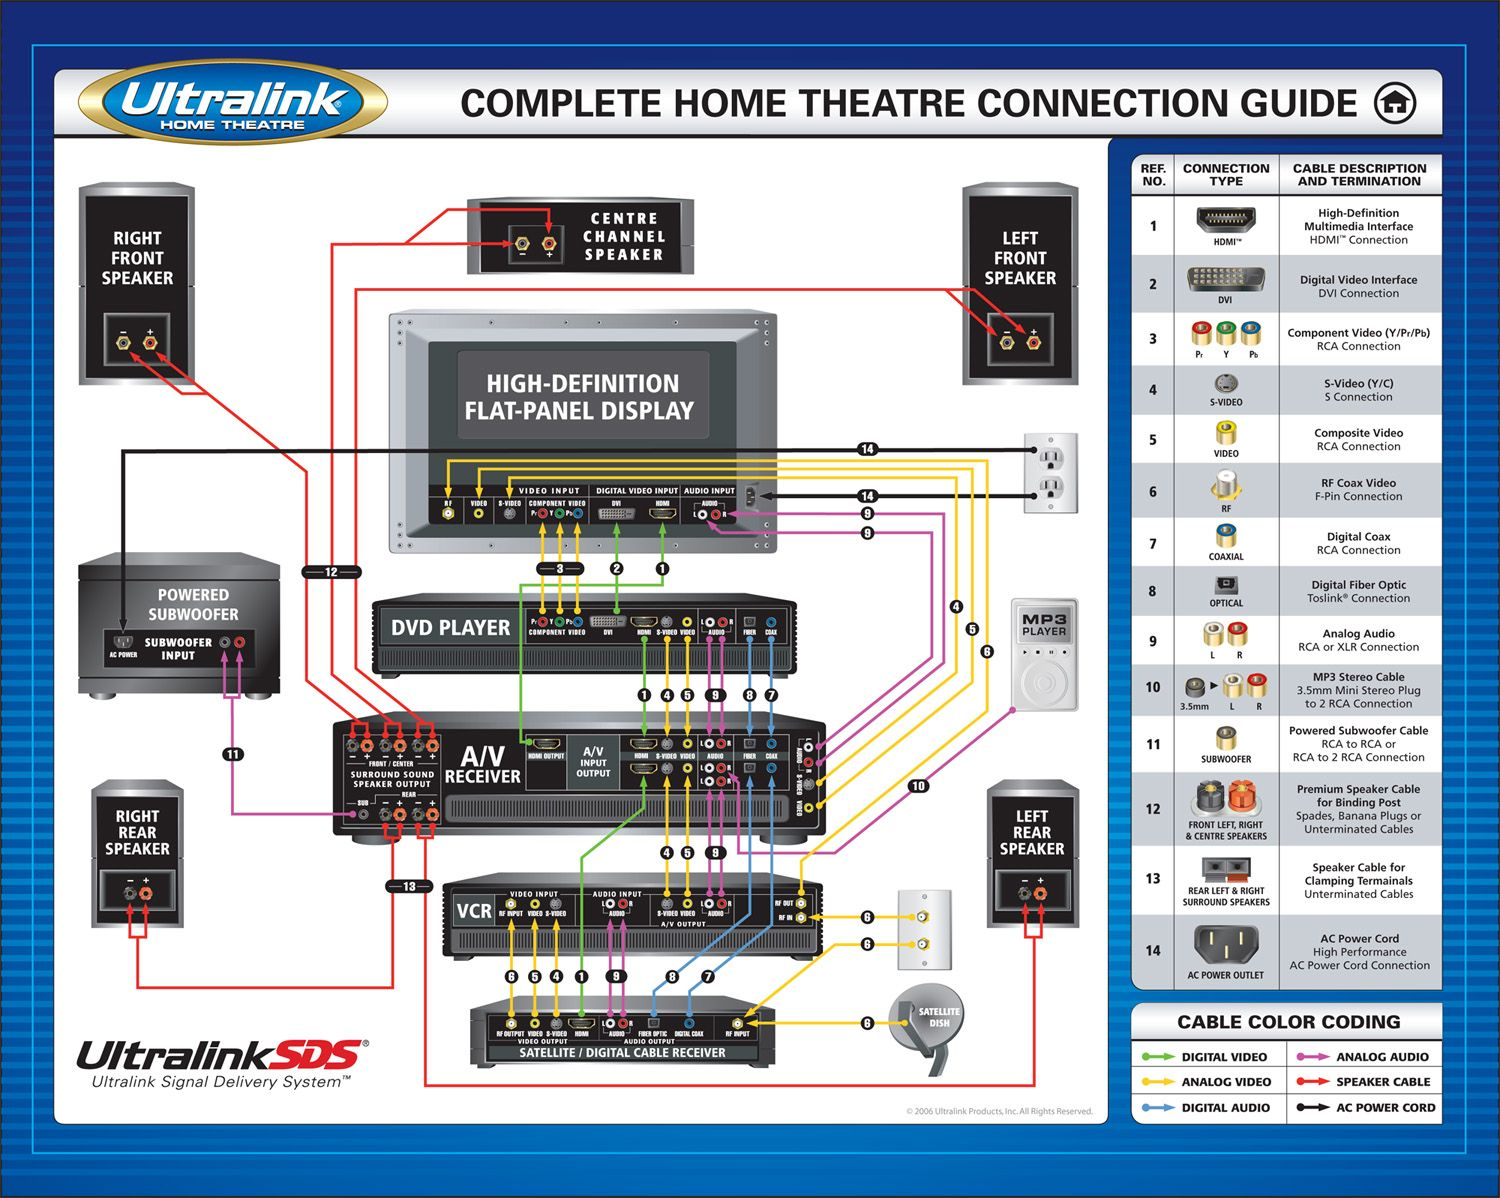 commercial audio equipment wiring diagram install wiring library commercial audio equipment wiring diagram install [ 1500 x 1198 Pixel ]